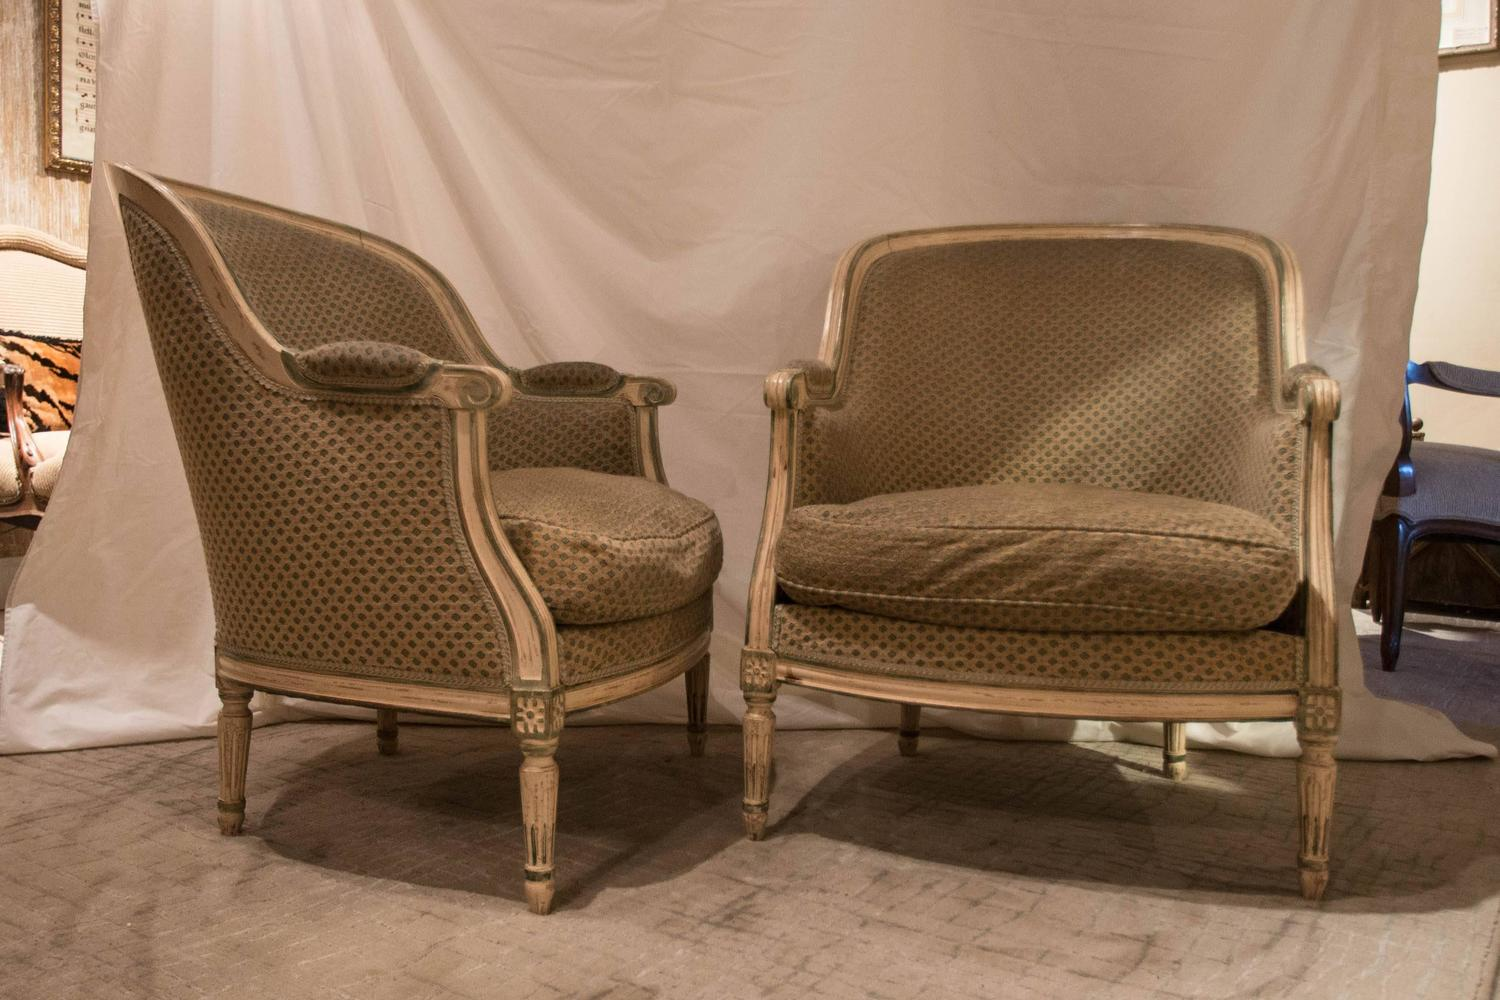 hickory chair louis xvi cotton covers uk pair of style french bergere chairs for sale at